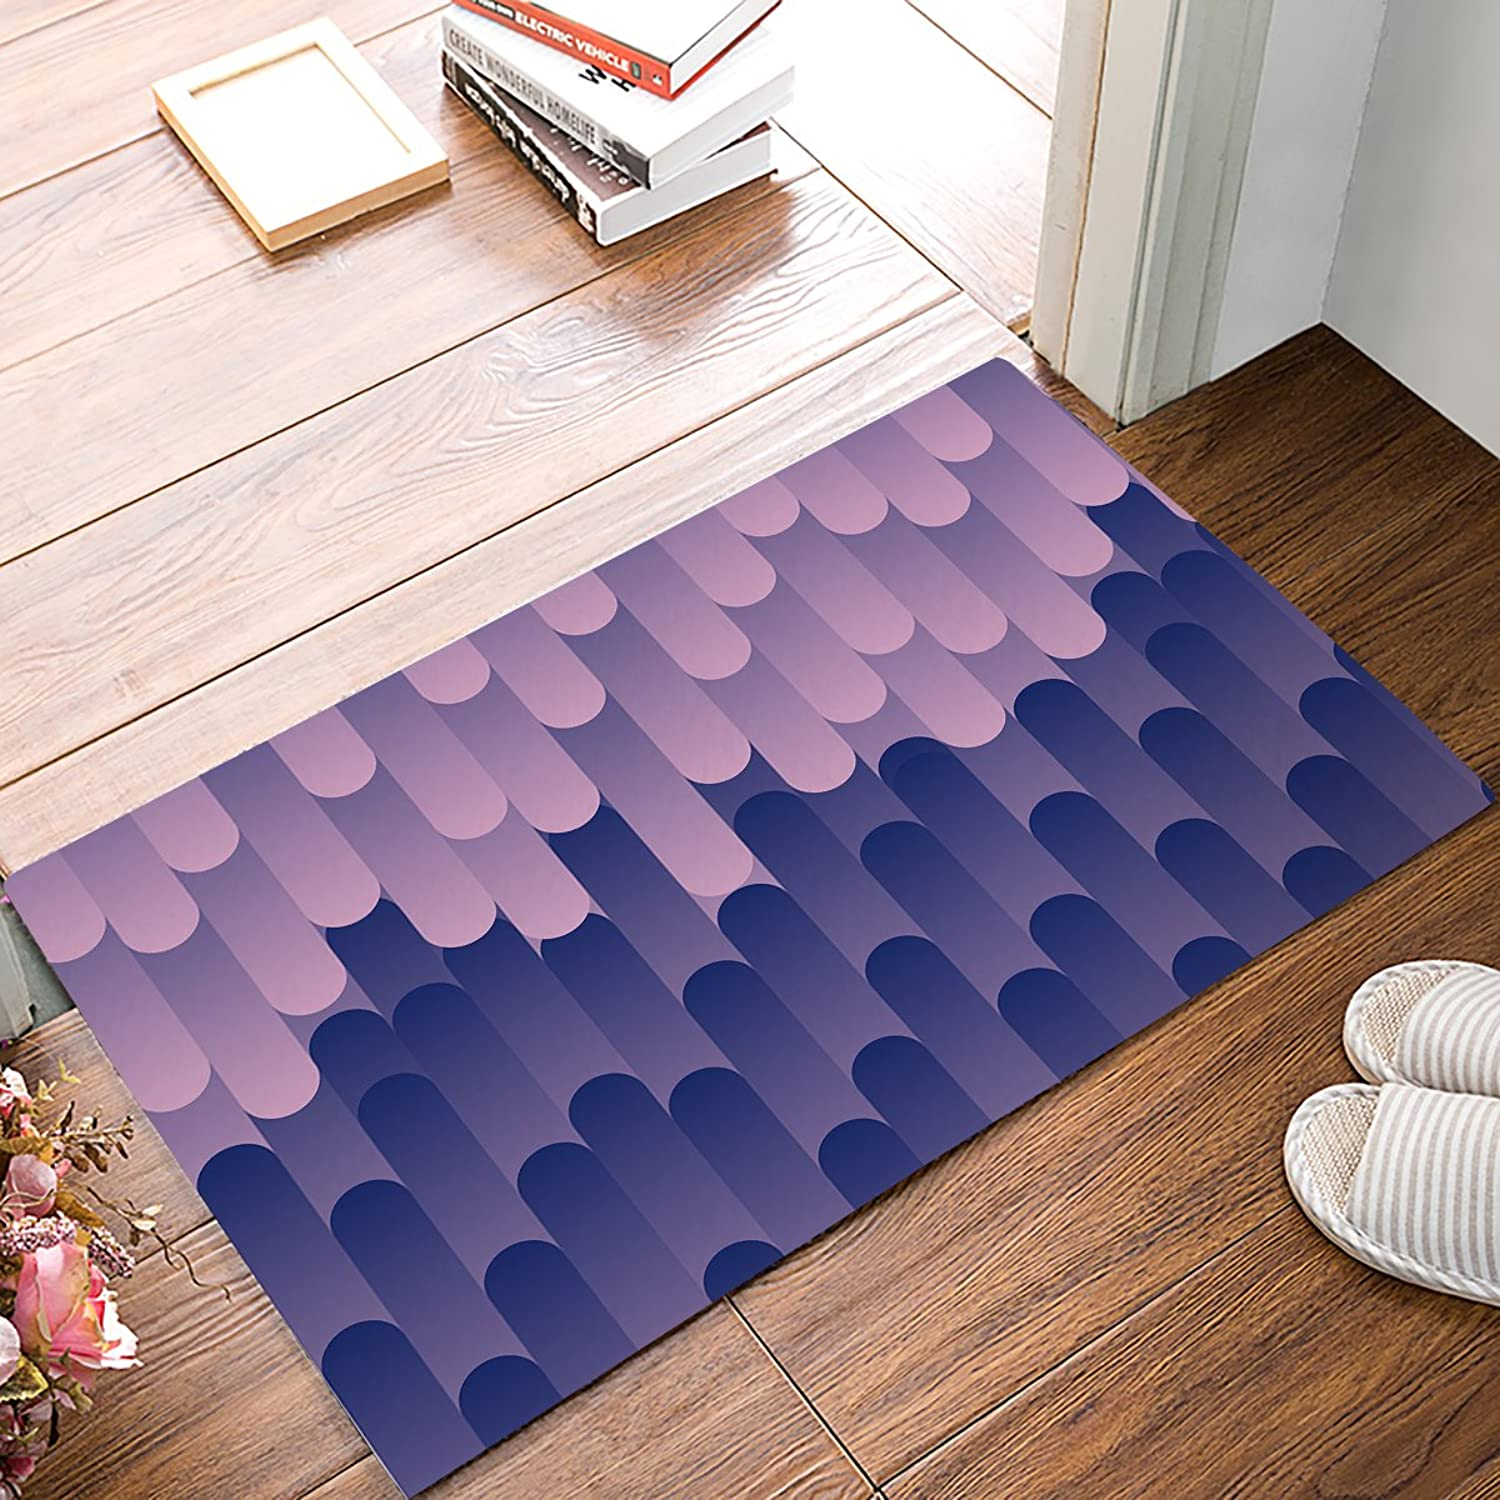 Findamy Non-slip Door Mat Entrance Rug Rectangle Absorbent Moisture Floor Carpet for Indoor Outdoor bluee Purple Irregular Cylinder Pattern Doormat 20x31.5 inch by